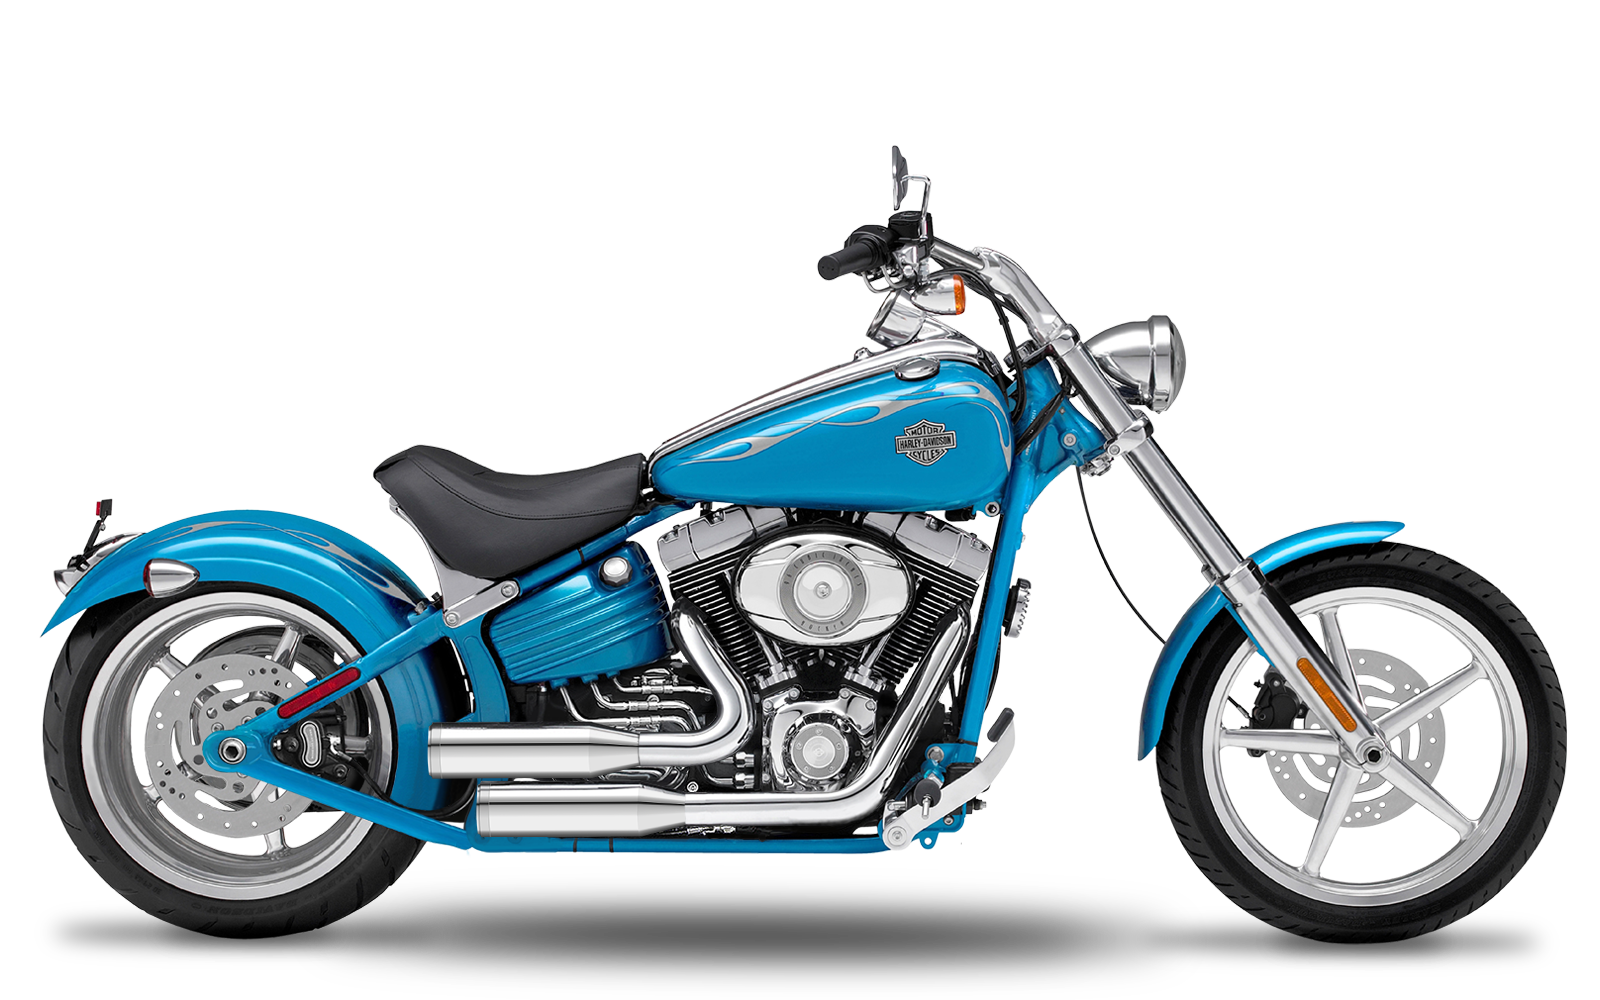 Softail - Rocker C - TC96 - 2007-2011 - Complete systems adjustable